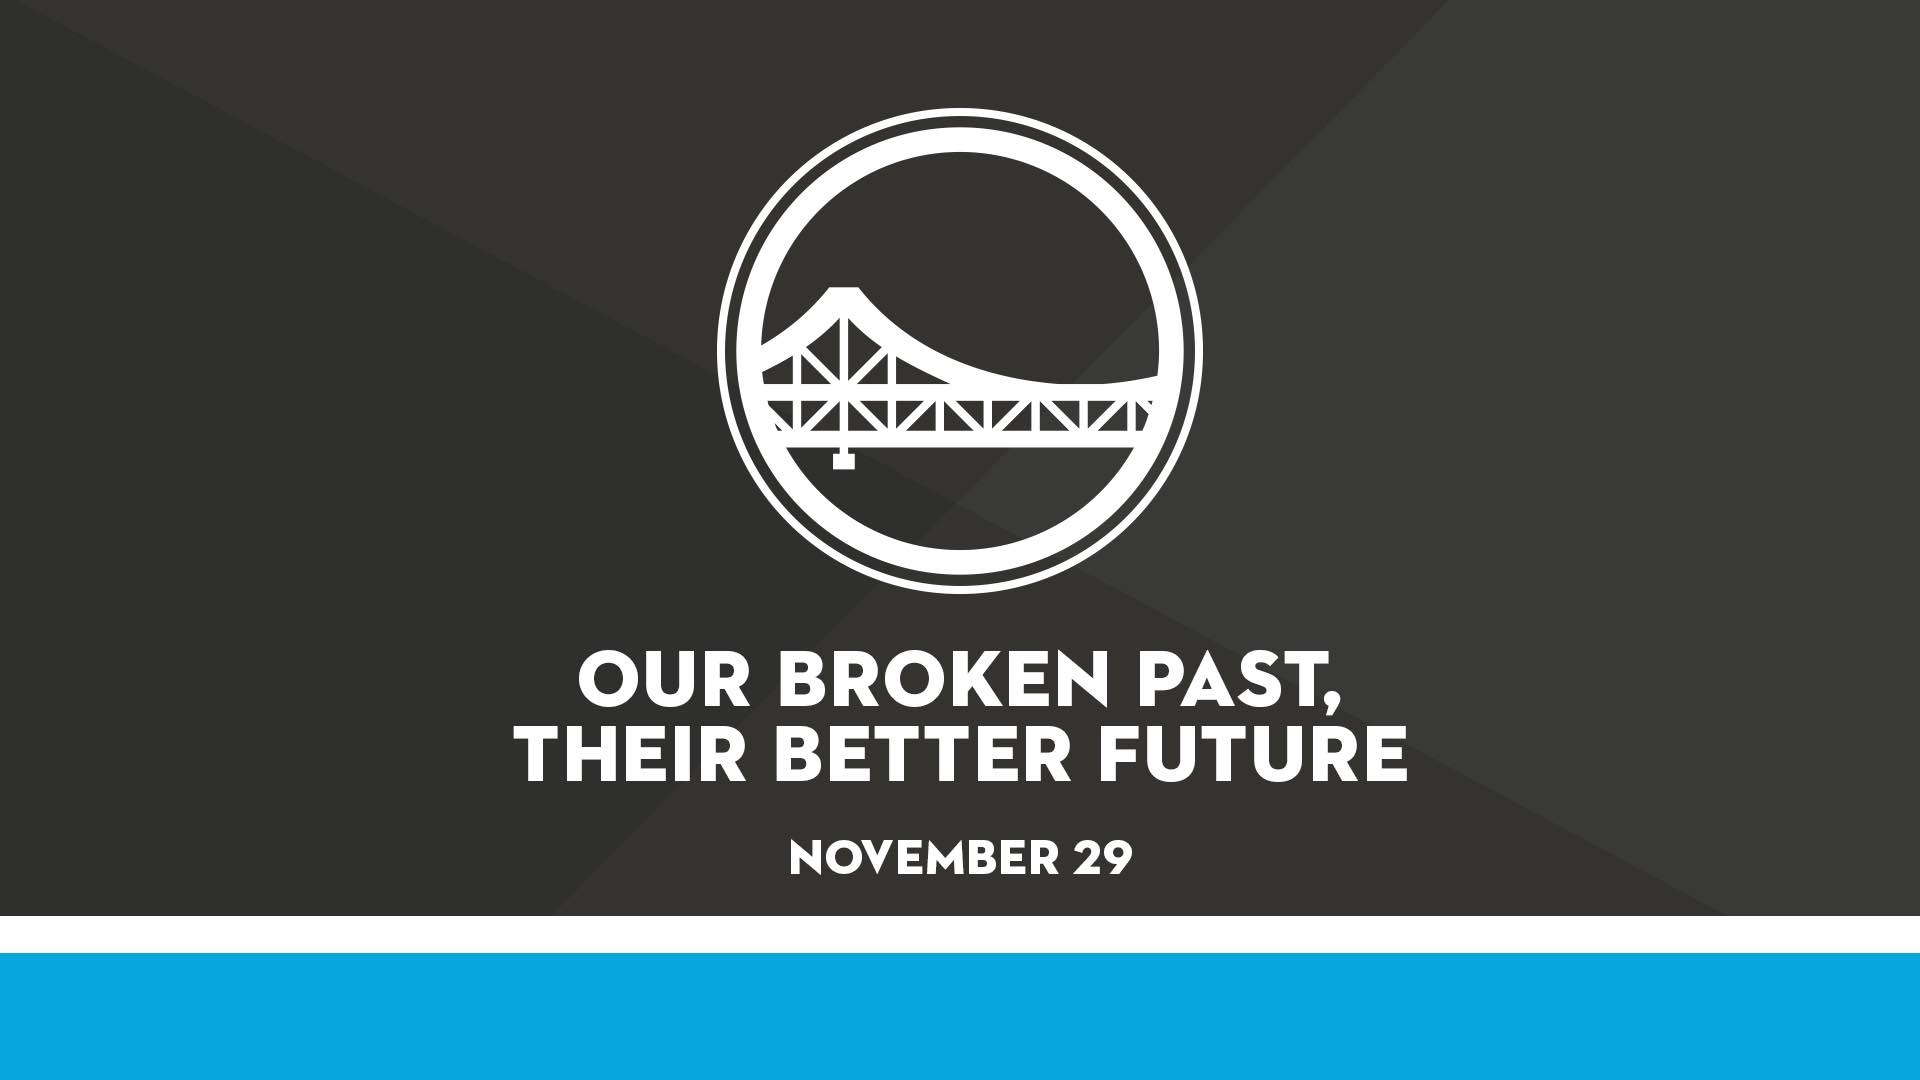 Our Broken Past, Their Better Future